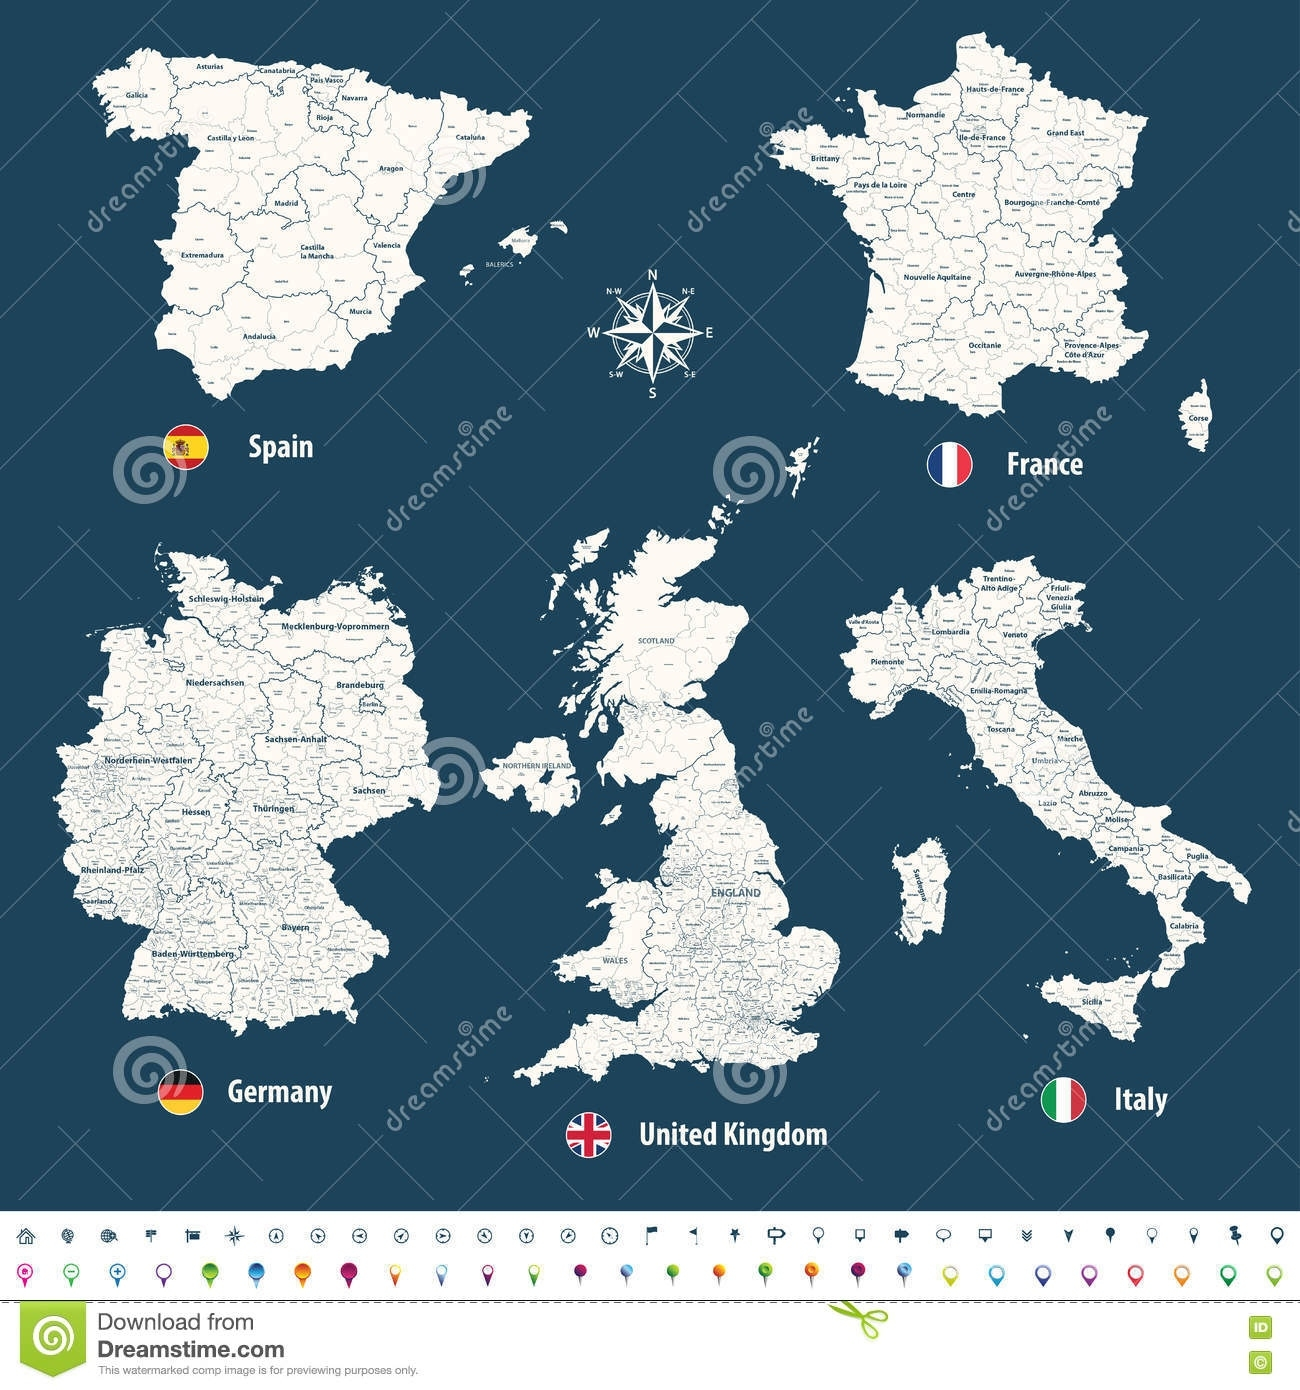 High Detailed Vector Maps Of United Kingdom, Italy, Germany, France throughout Map Of Spain France And Germany